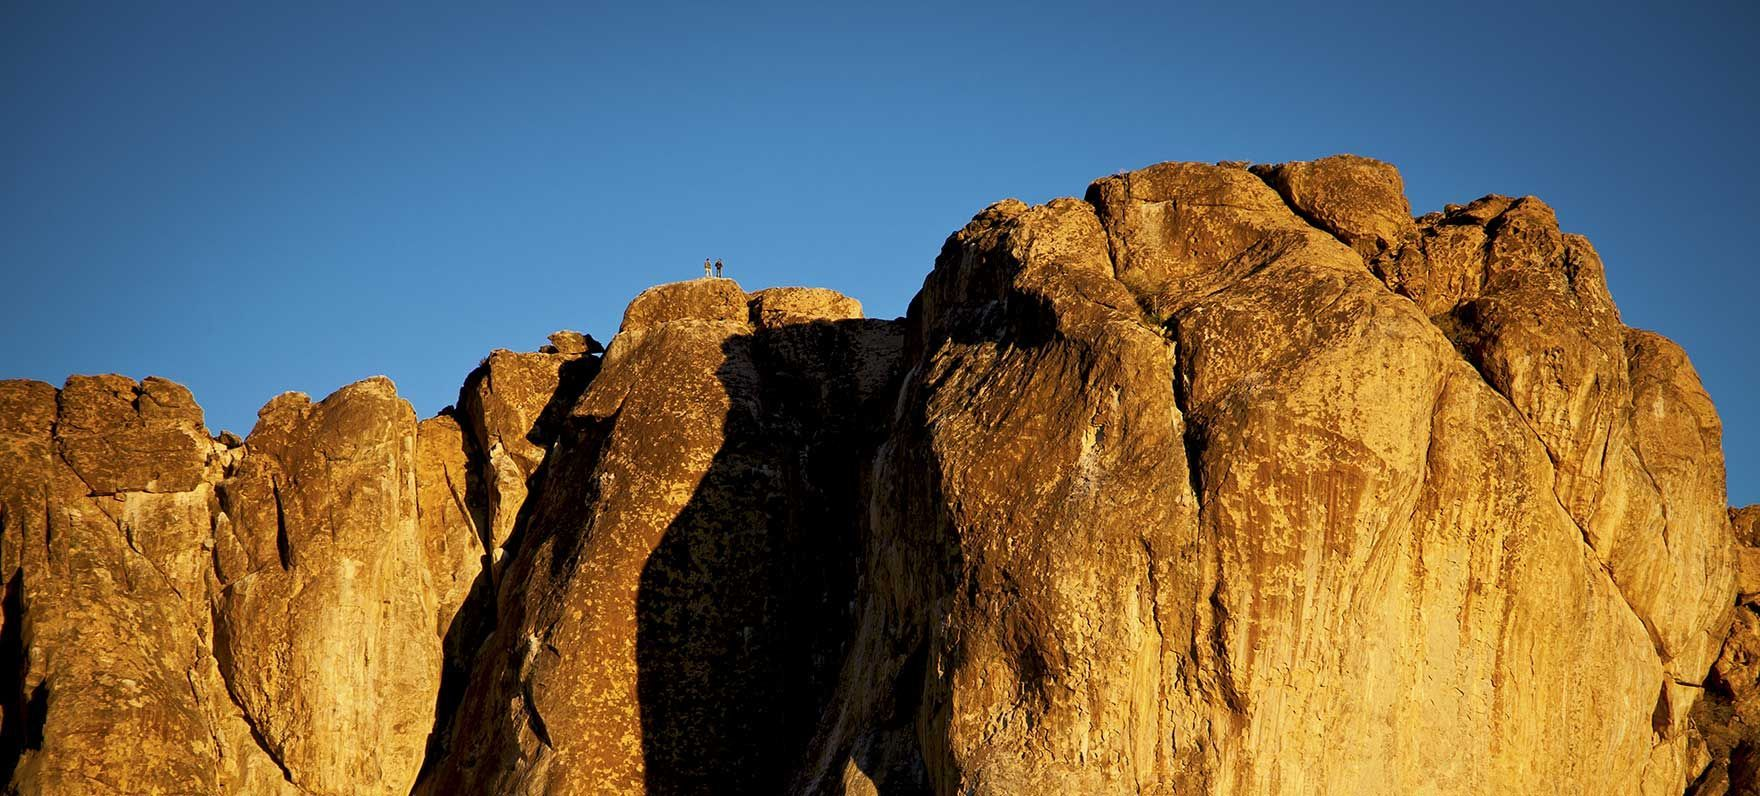 Far West Texas Beauty to visit! (With images) | State ...